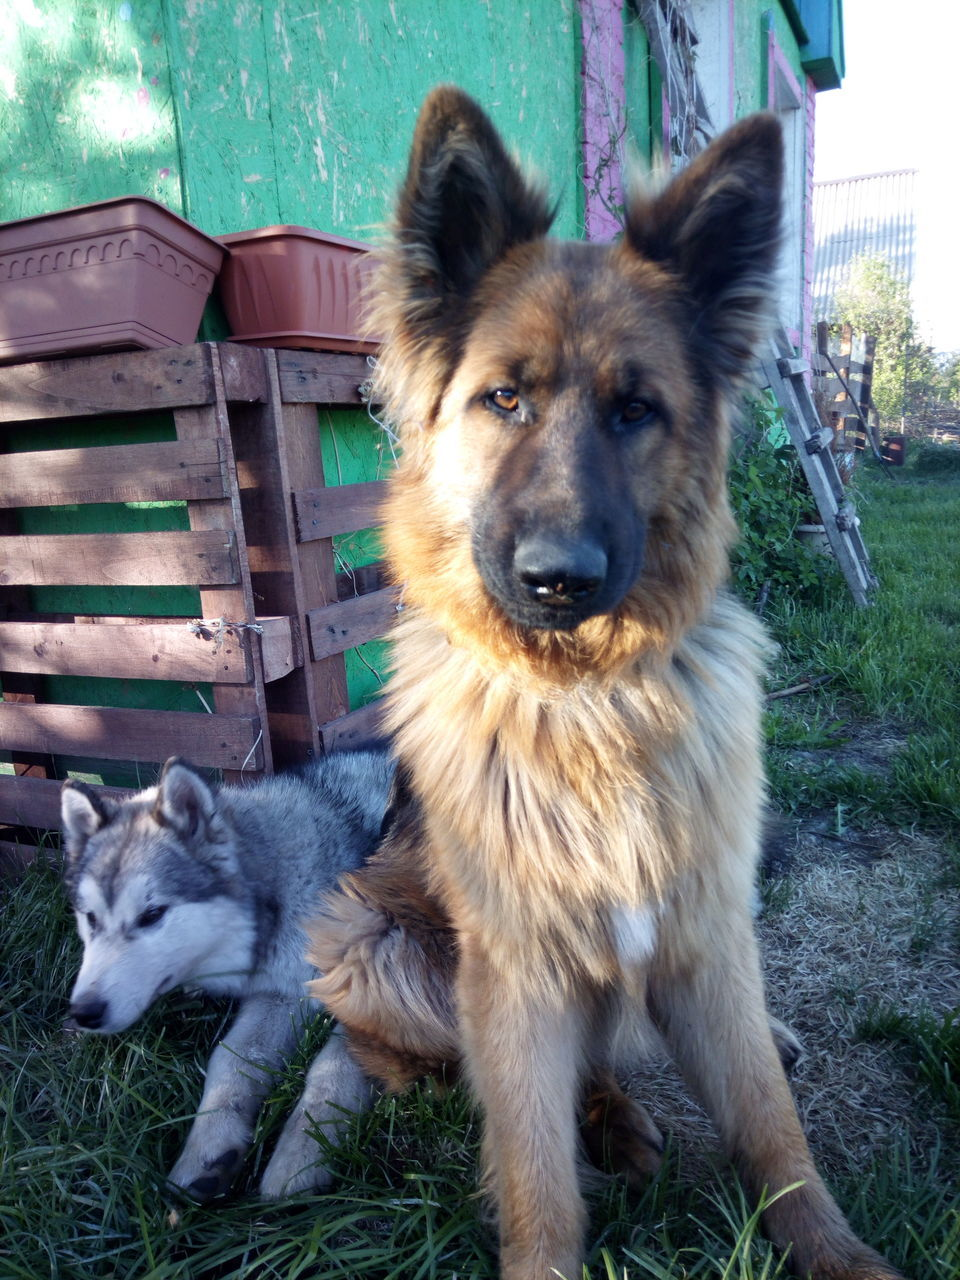 pets, dog, domestic animals, animal themes, mammal, looking at camera, one animal, portrait, no people, grass, german shepherd, sitting, day, outdoors, close-up